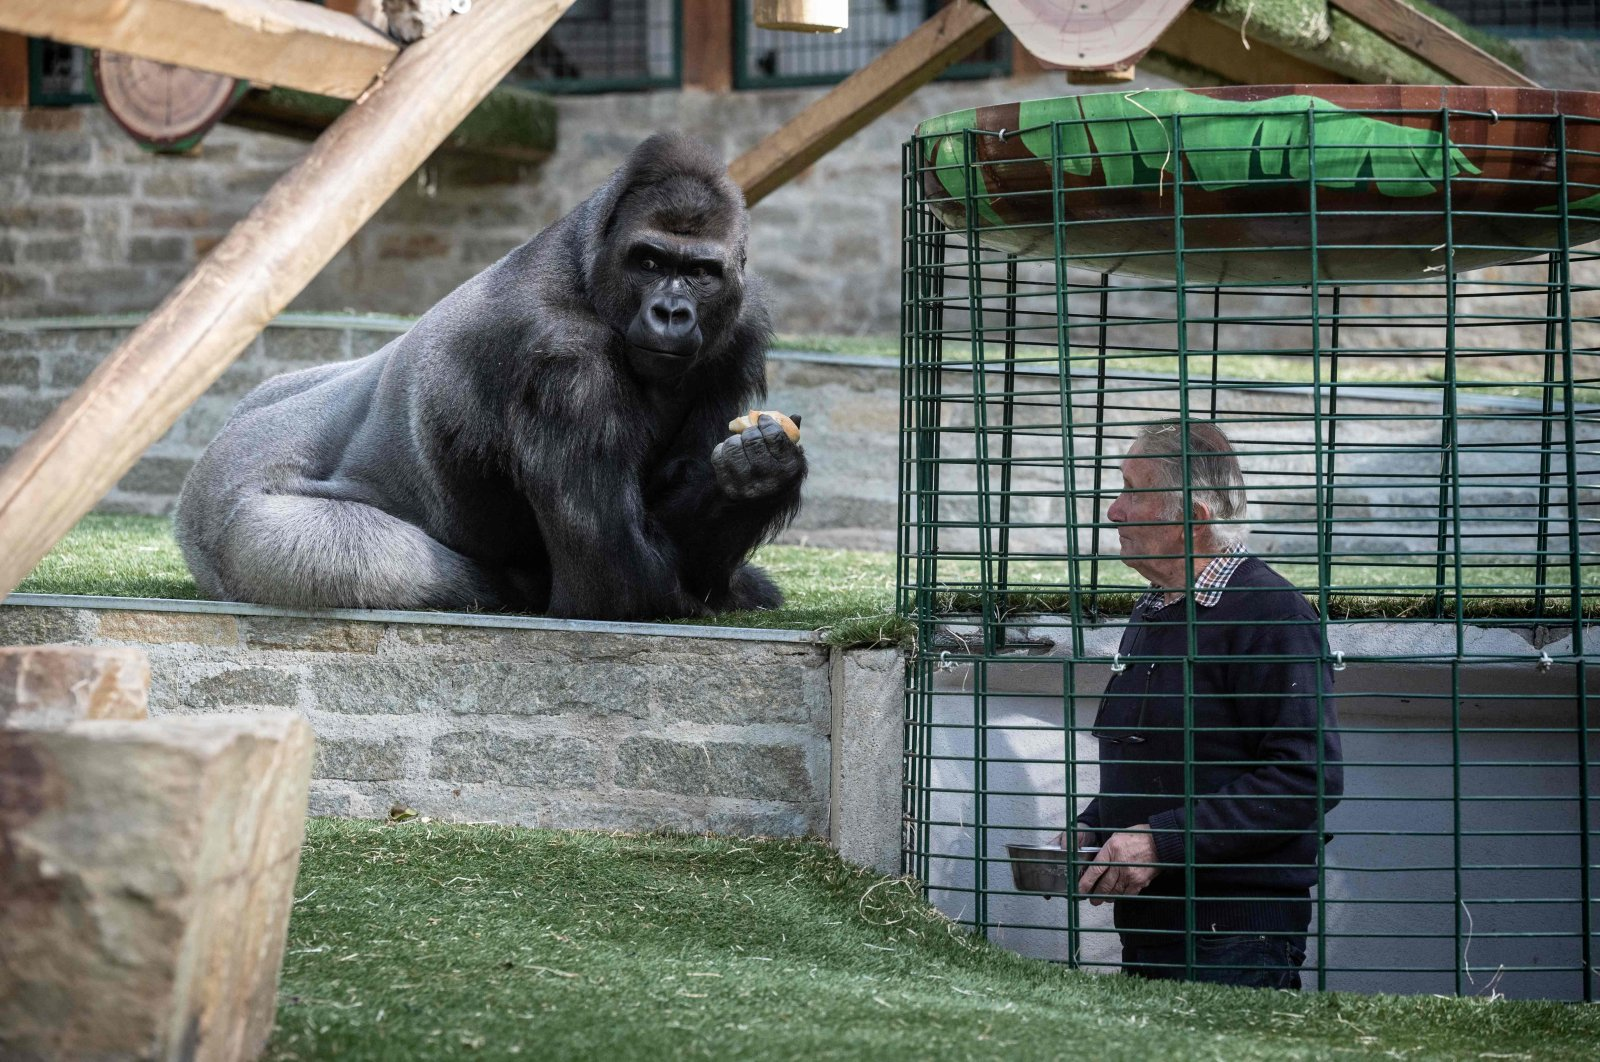 This file photo shows the owner of the zoo Pierre Thivillon takes care of a gorilla on May 17, 2021, at the zoological park of Saint-Martin-la-Plaine, two days ahead of its reopening as part of France's latest step toward the ending of its third nationwide COVID-19 lockdown. (AFP Photo)